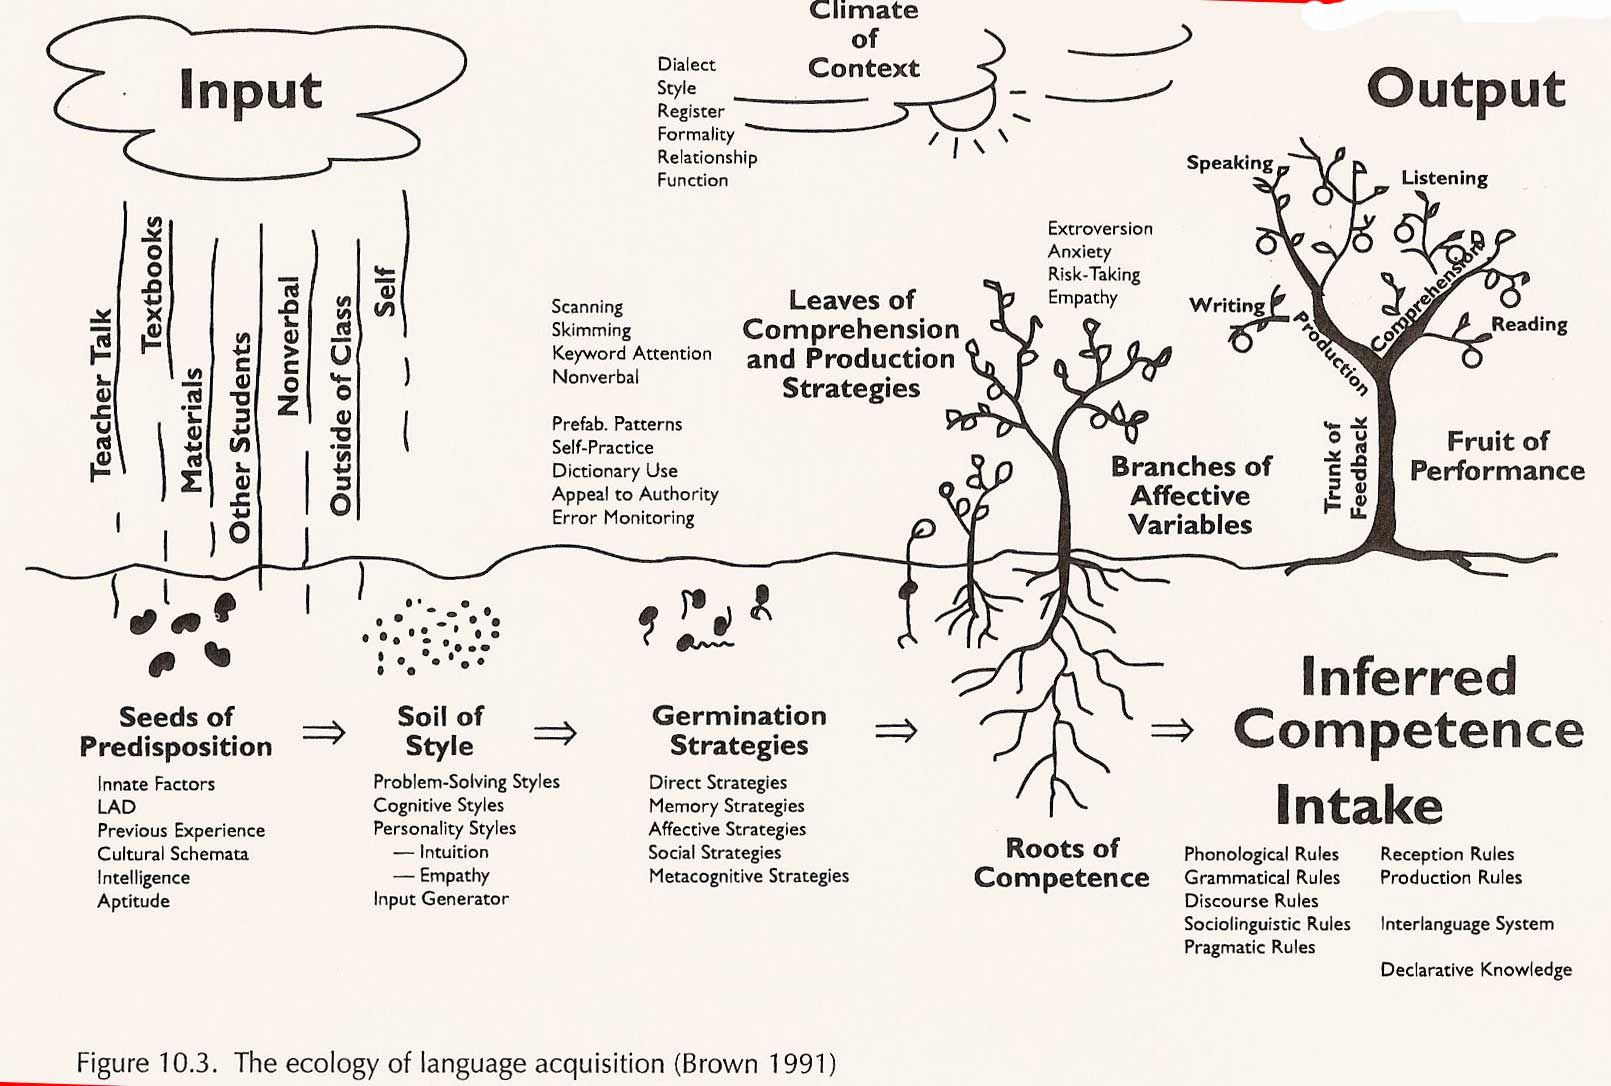 Example of usage from Krashen's model and how (BICS